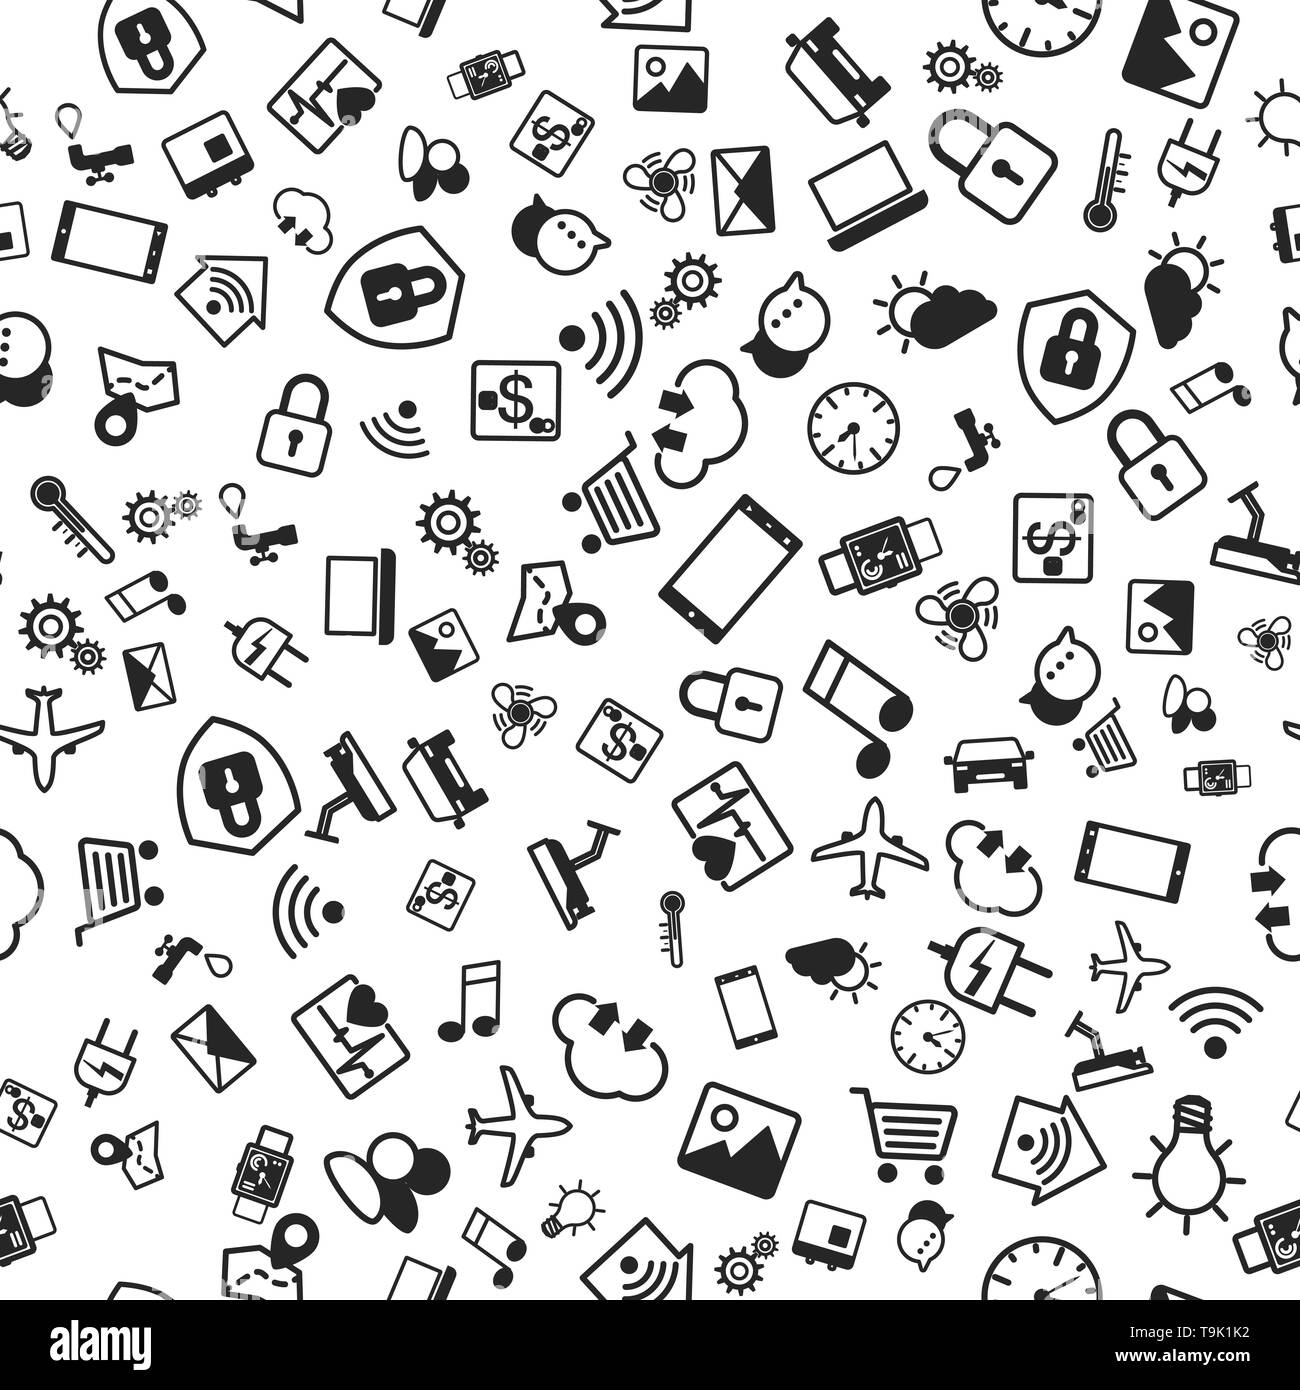 IOT concept. Internet of things icons seamless pattern. Vector illustration - Stock Image